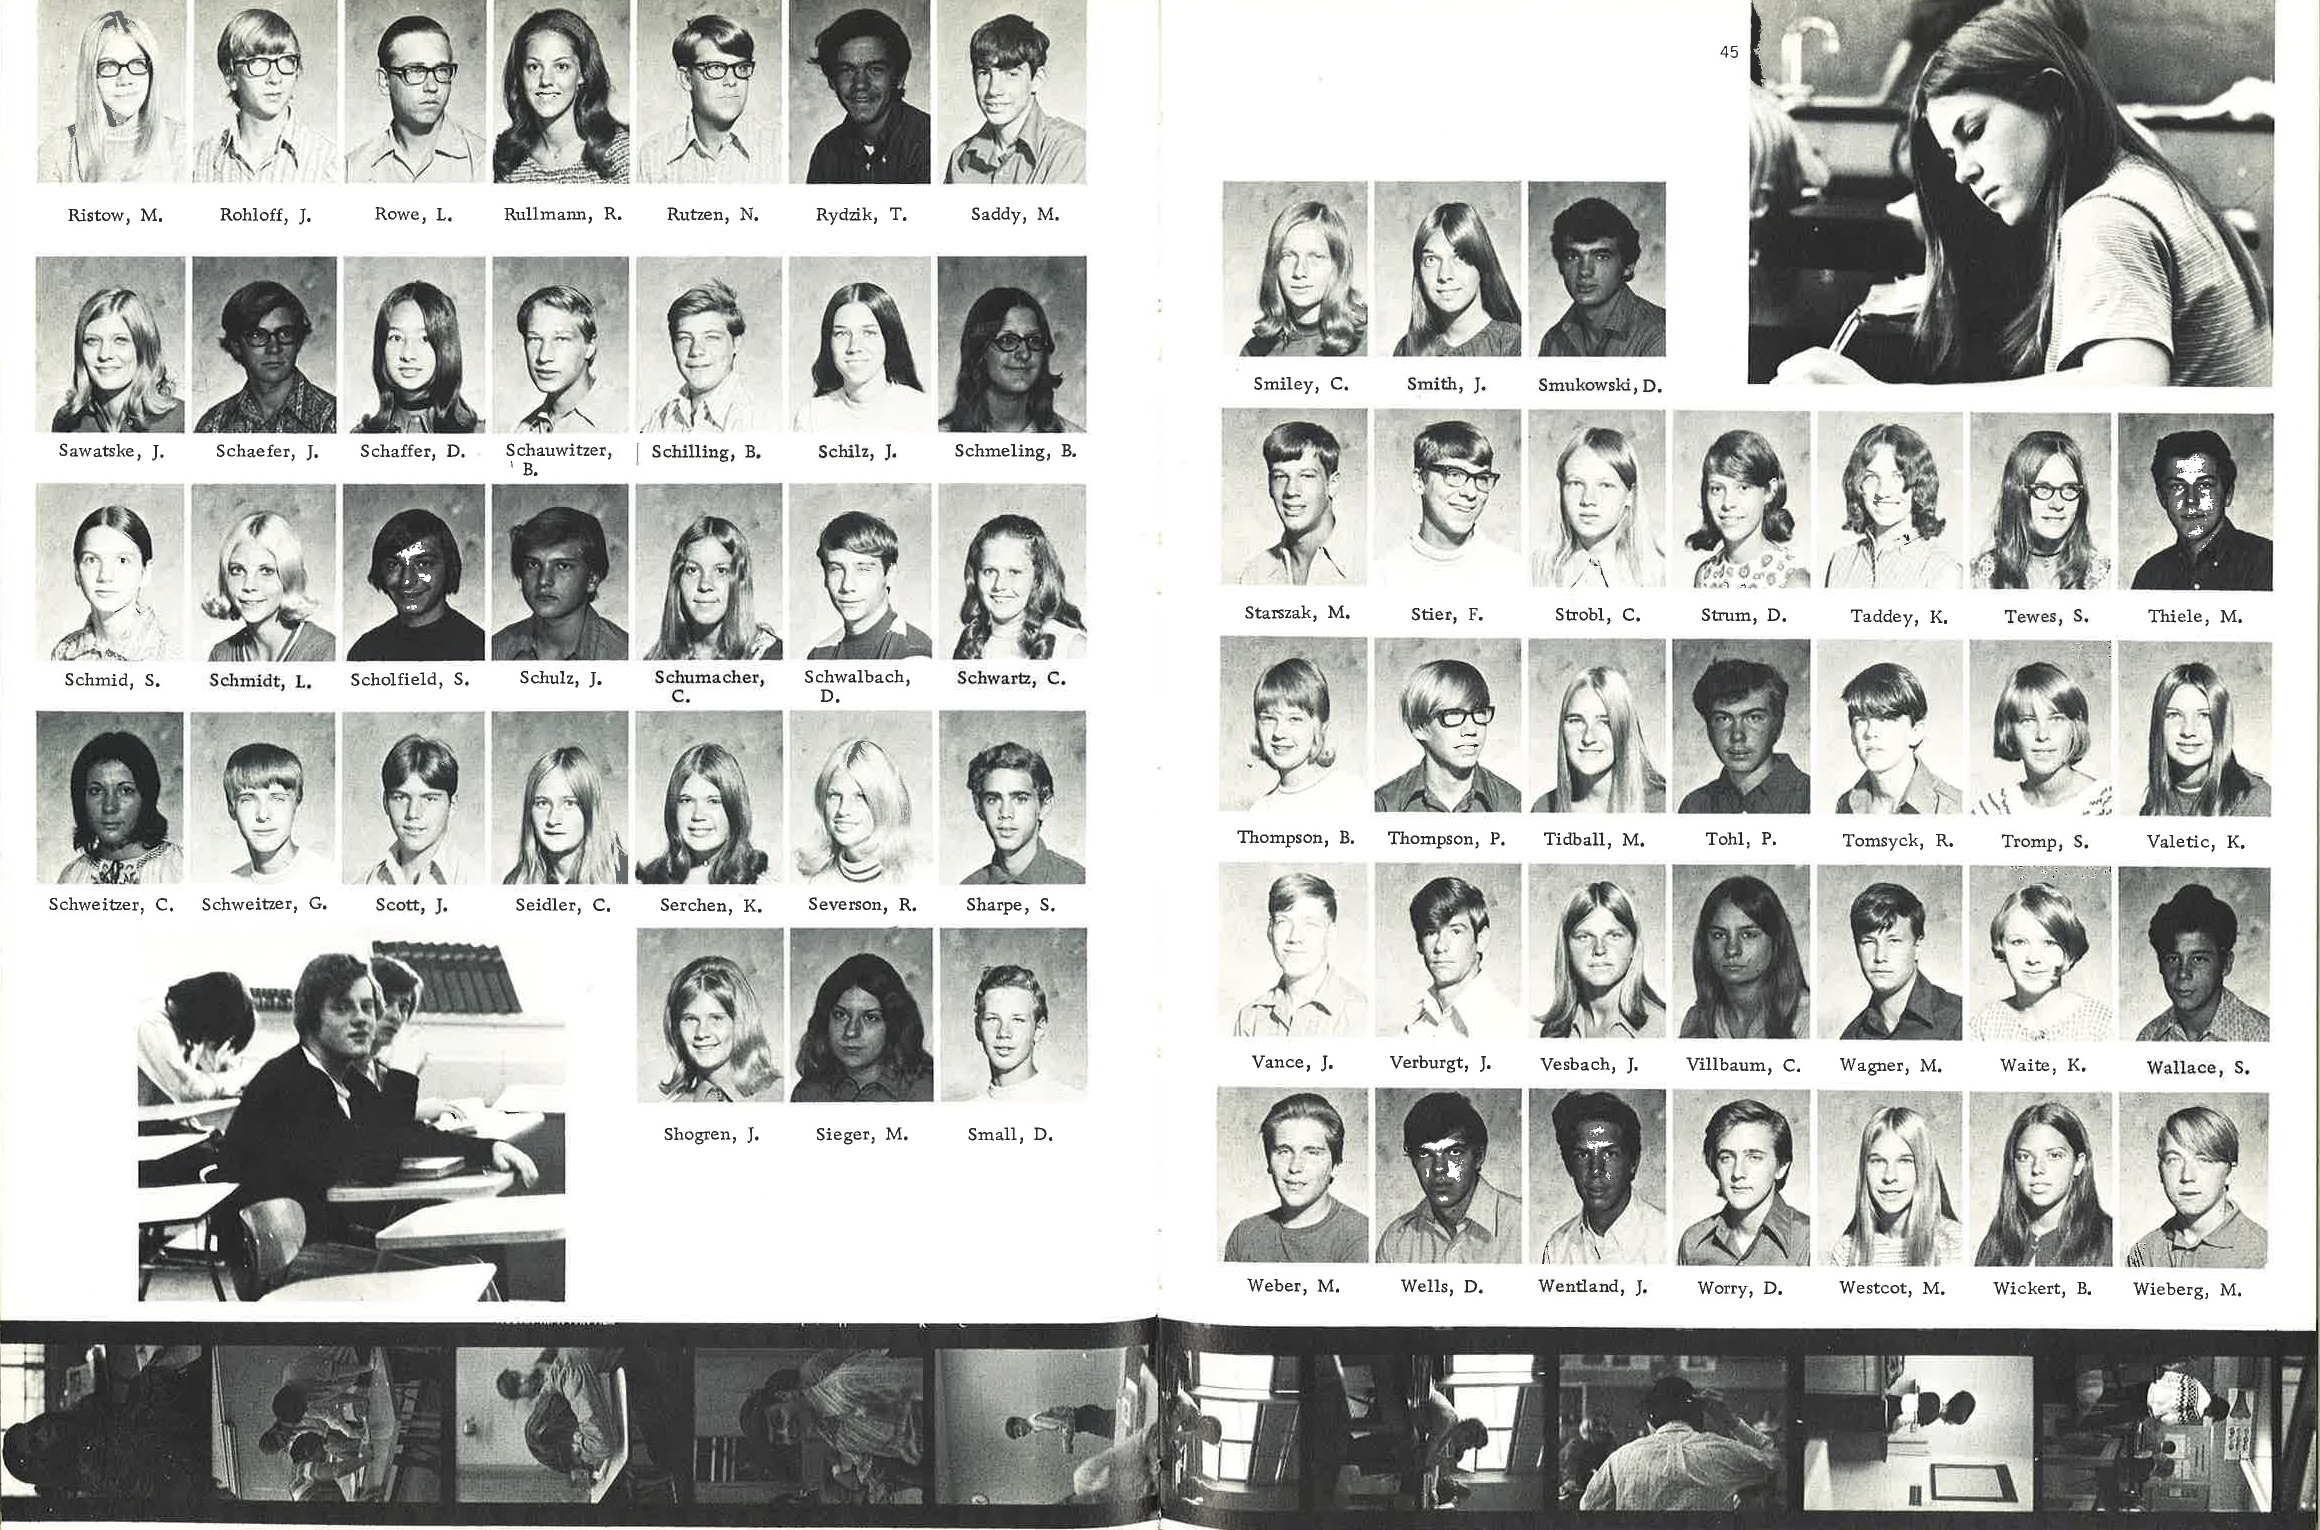 1972_Yearbook_44-45.jpg